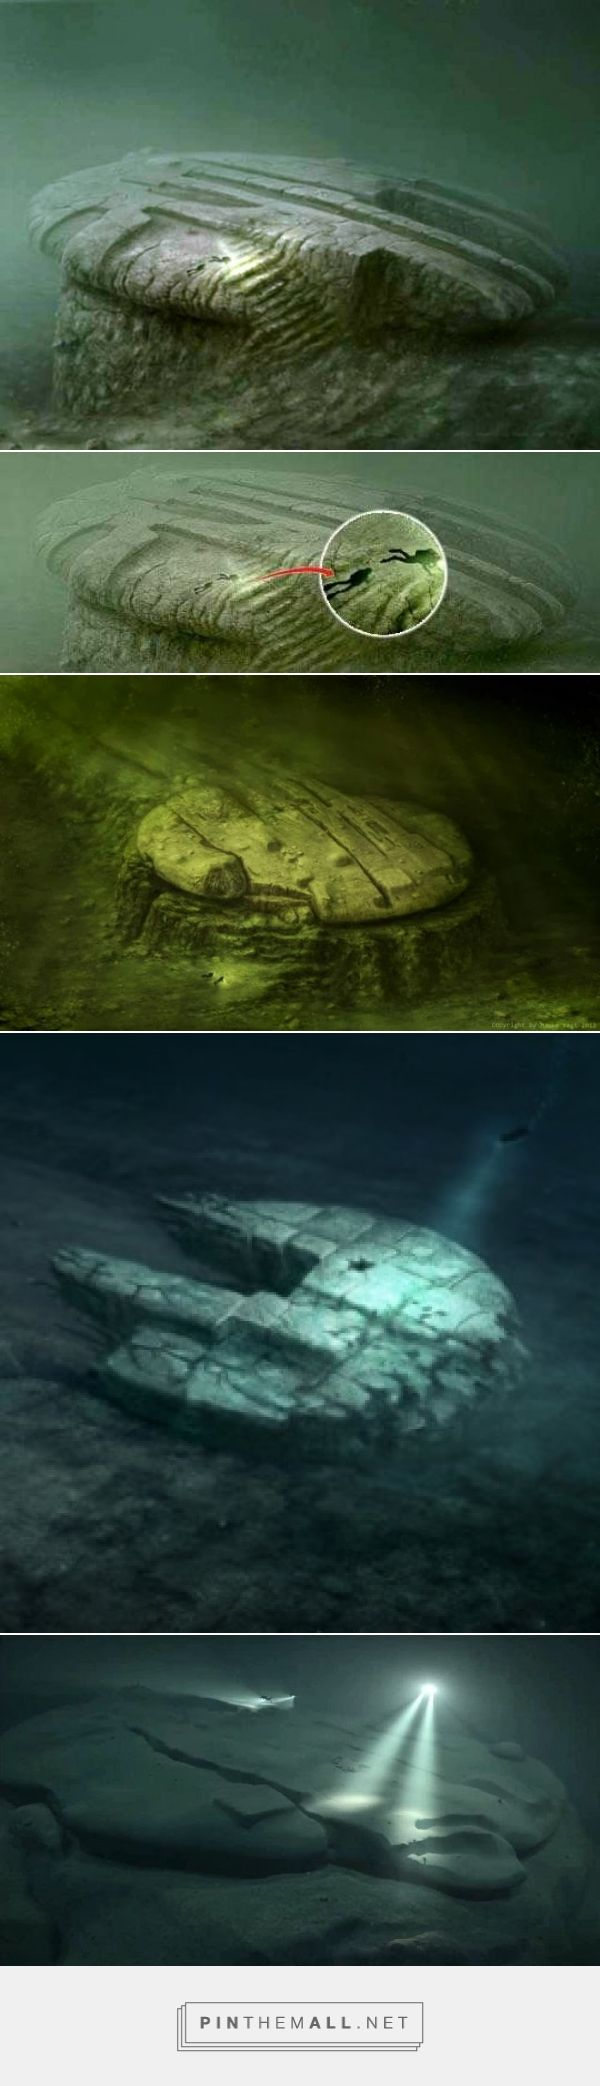 The Baltic Sea Anomaly - 2014, 14,000 Year Fossilized Ufouso Crash Site, Shag Harbour Incident, Stunning Discoveries  Beyond Science  Pinterest -9552